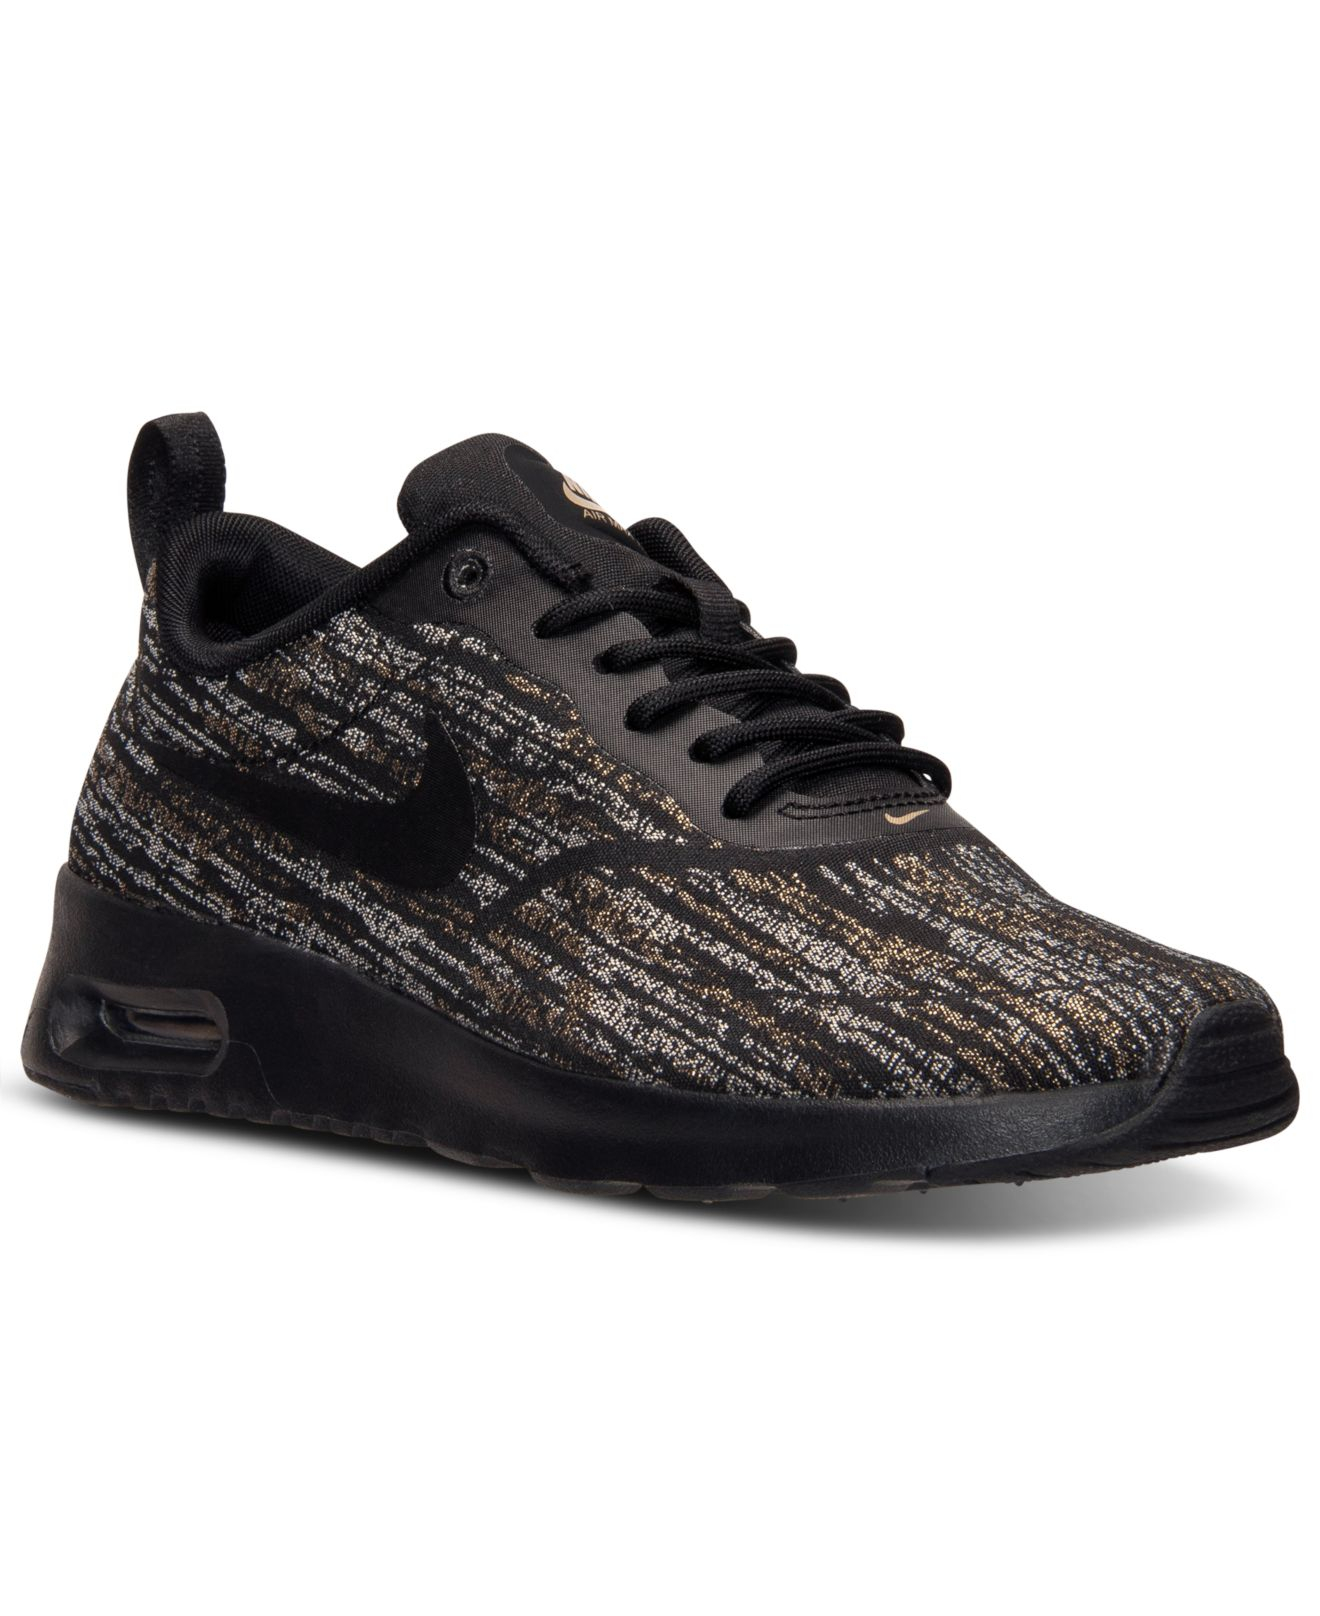 nike women 39 s air max thea jcrd running sneakers from. Black Bedroom Furniture Sets. Home Design Ideas